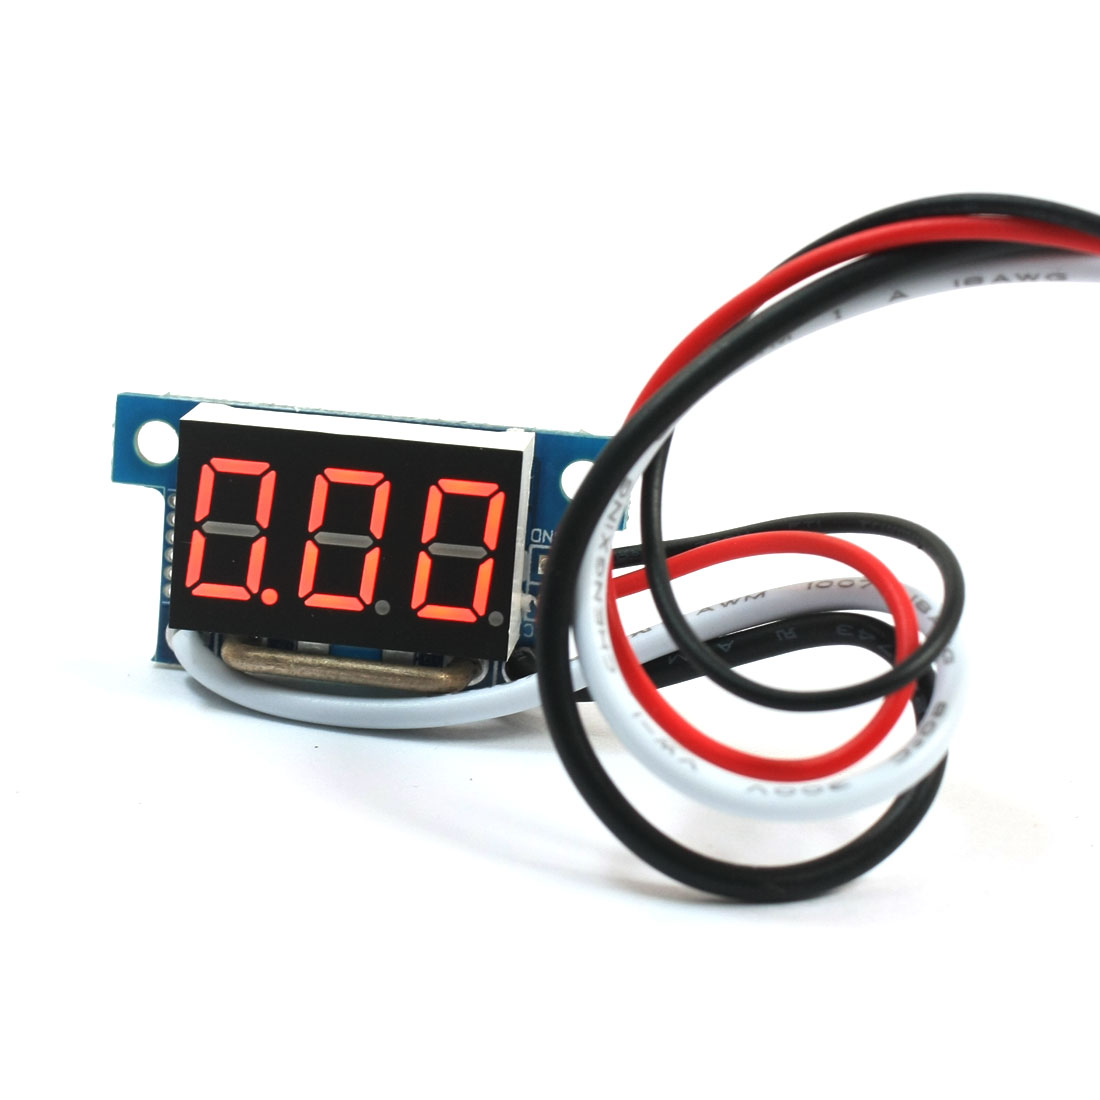 Digital DC 0-10A Red LCD Display Current Tester Gauge Panel Ammeter Meter